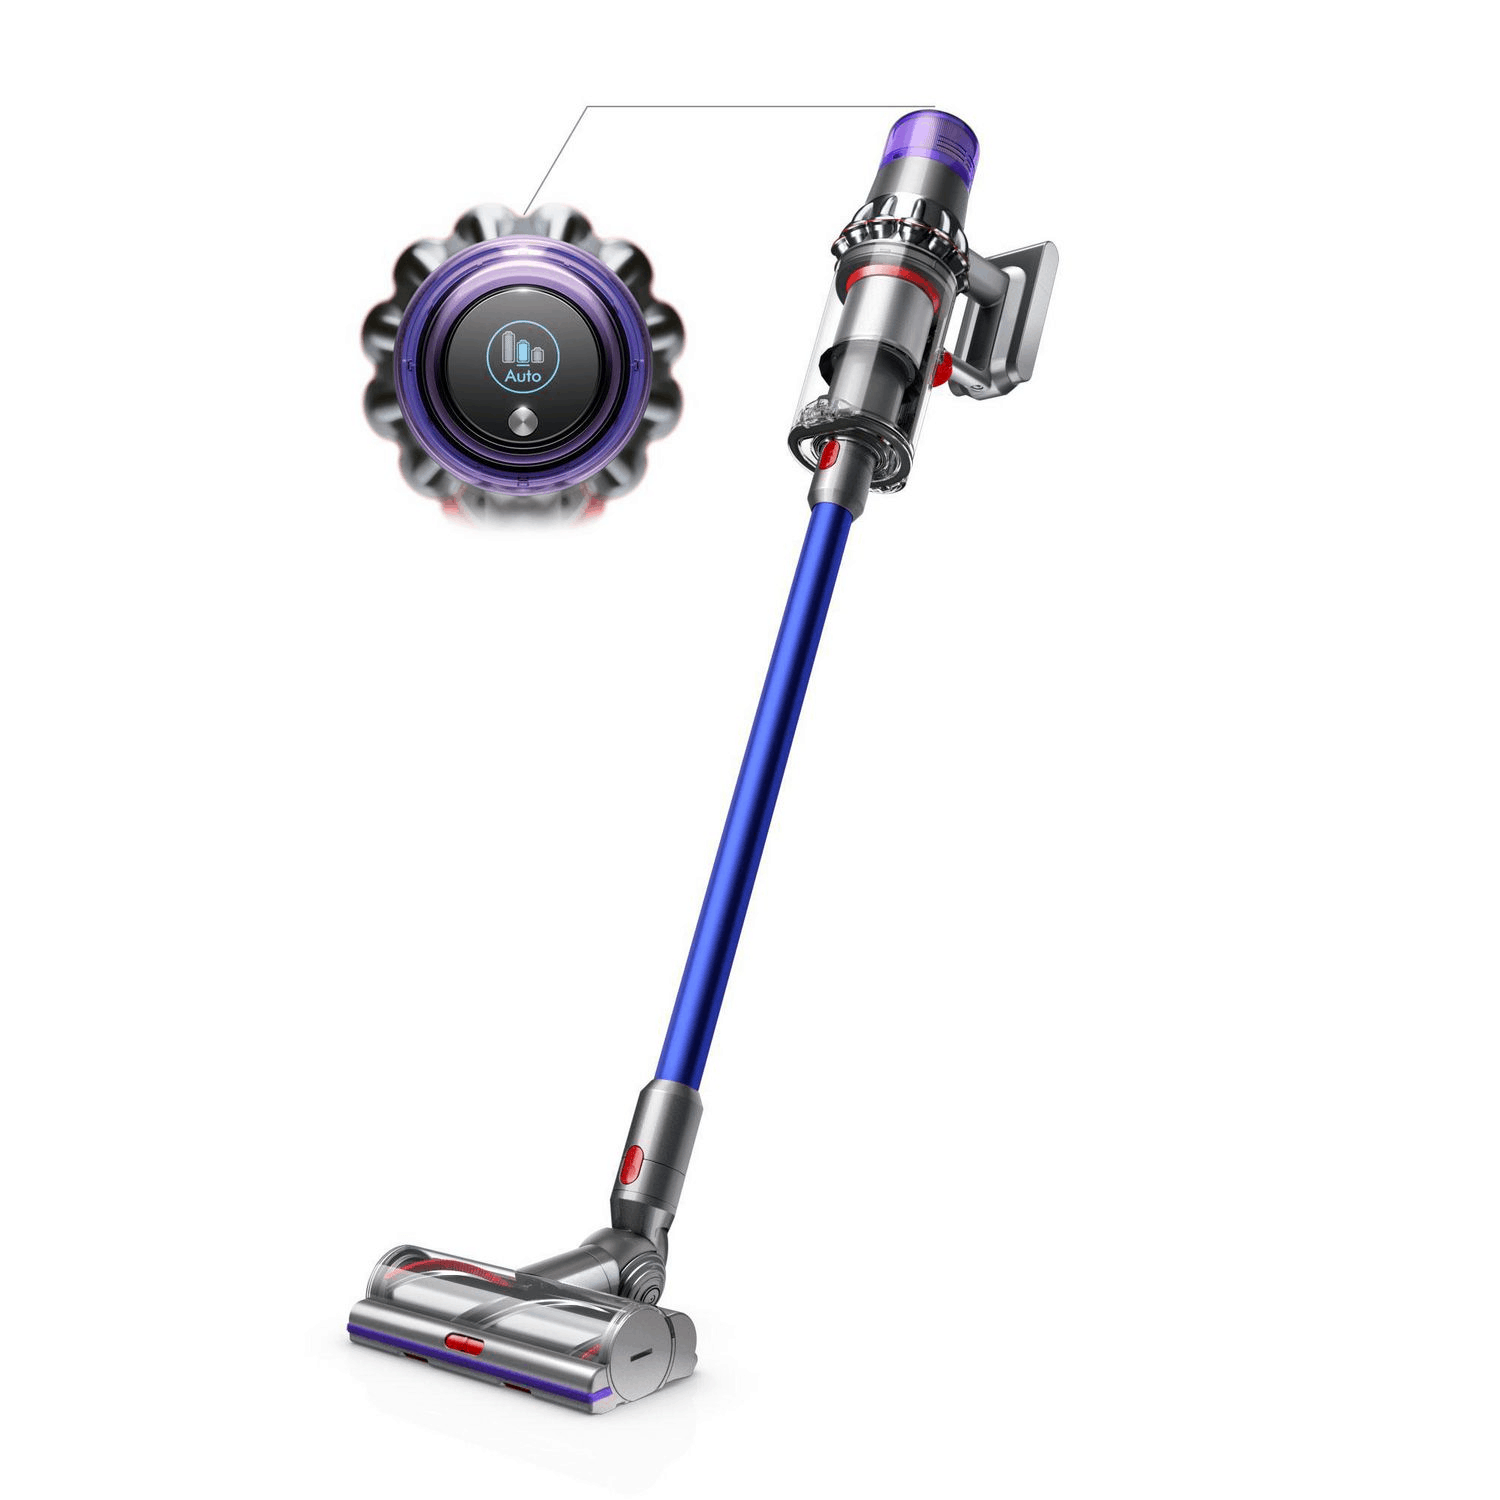 review of dyson handheld cordless vacuum cleaner singapore